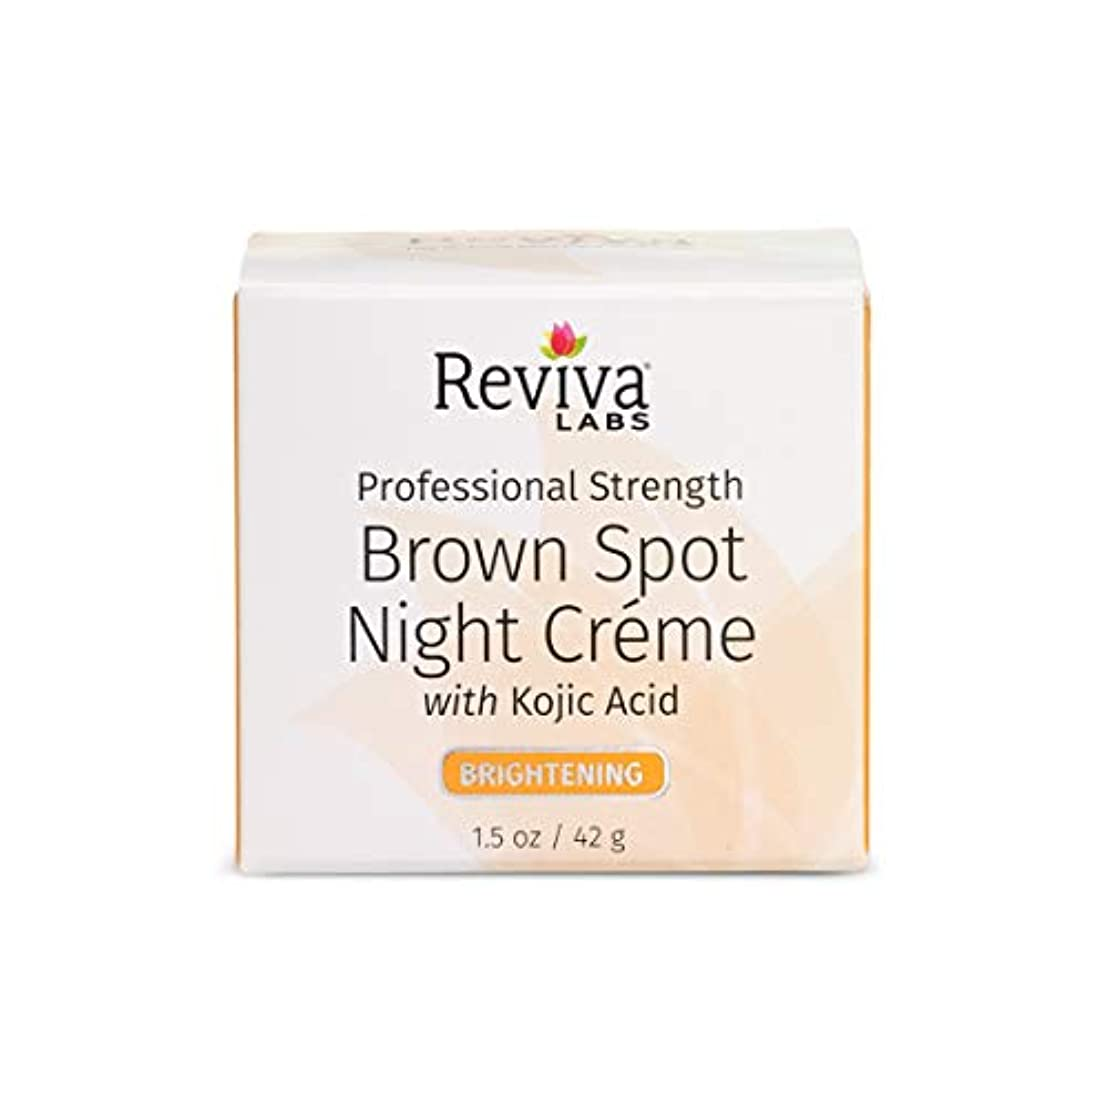 アカデミック足枷ジュース海外直送品 Reviva Brown Spot Night Cream, with Kojic Acid EA 1/1 OZ